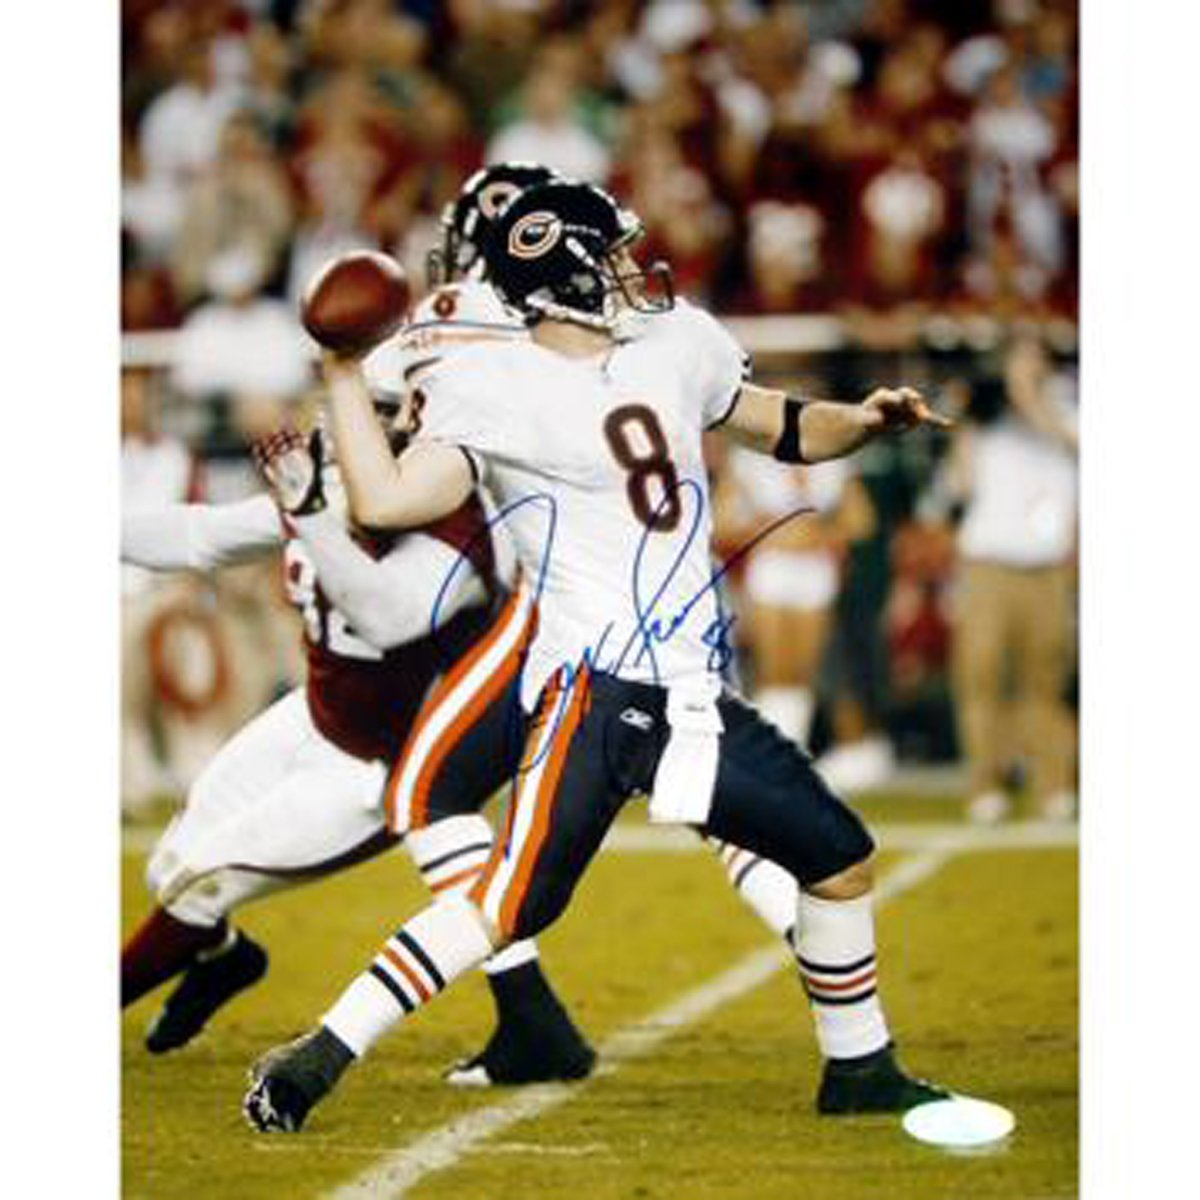 NFL Chicago Throw Bears Rex Grossman Throw vs.アリゾナ写真、8 x Chicago x 10-inch B00EWPKNC4, ゆめの工房:85ff6c12 --- harrow-unison.org.uk